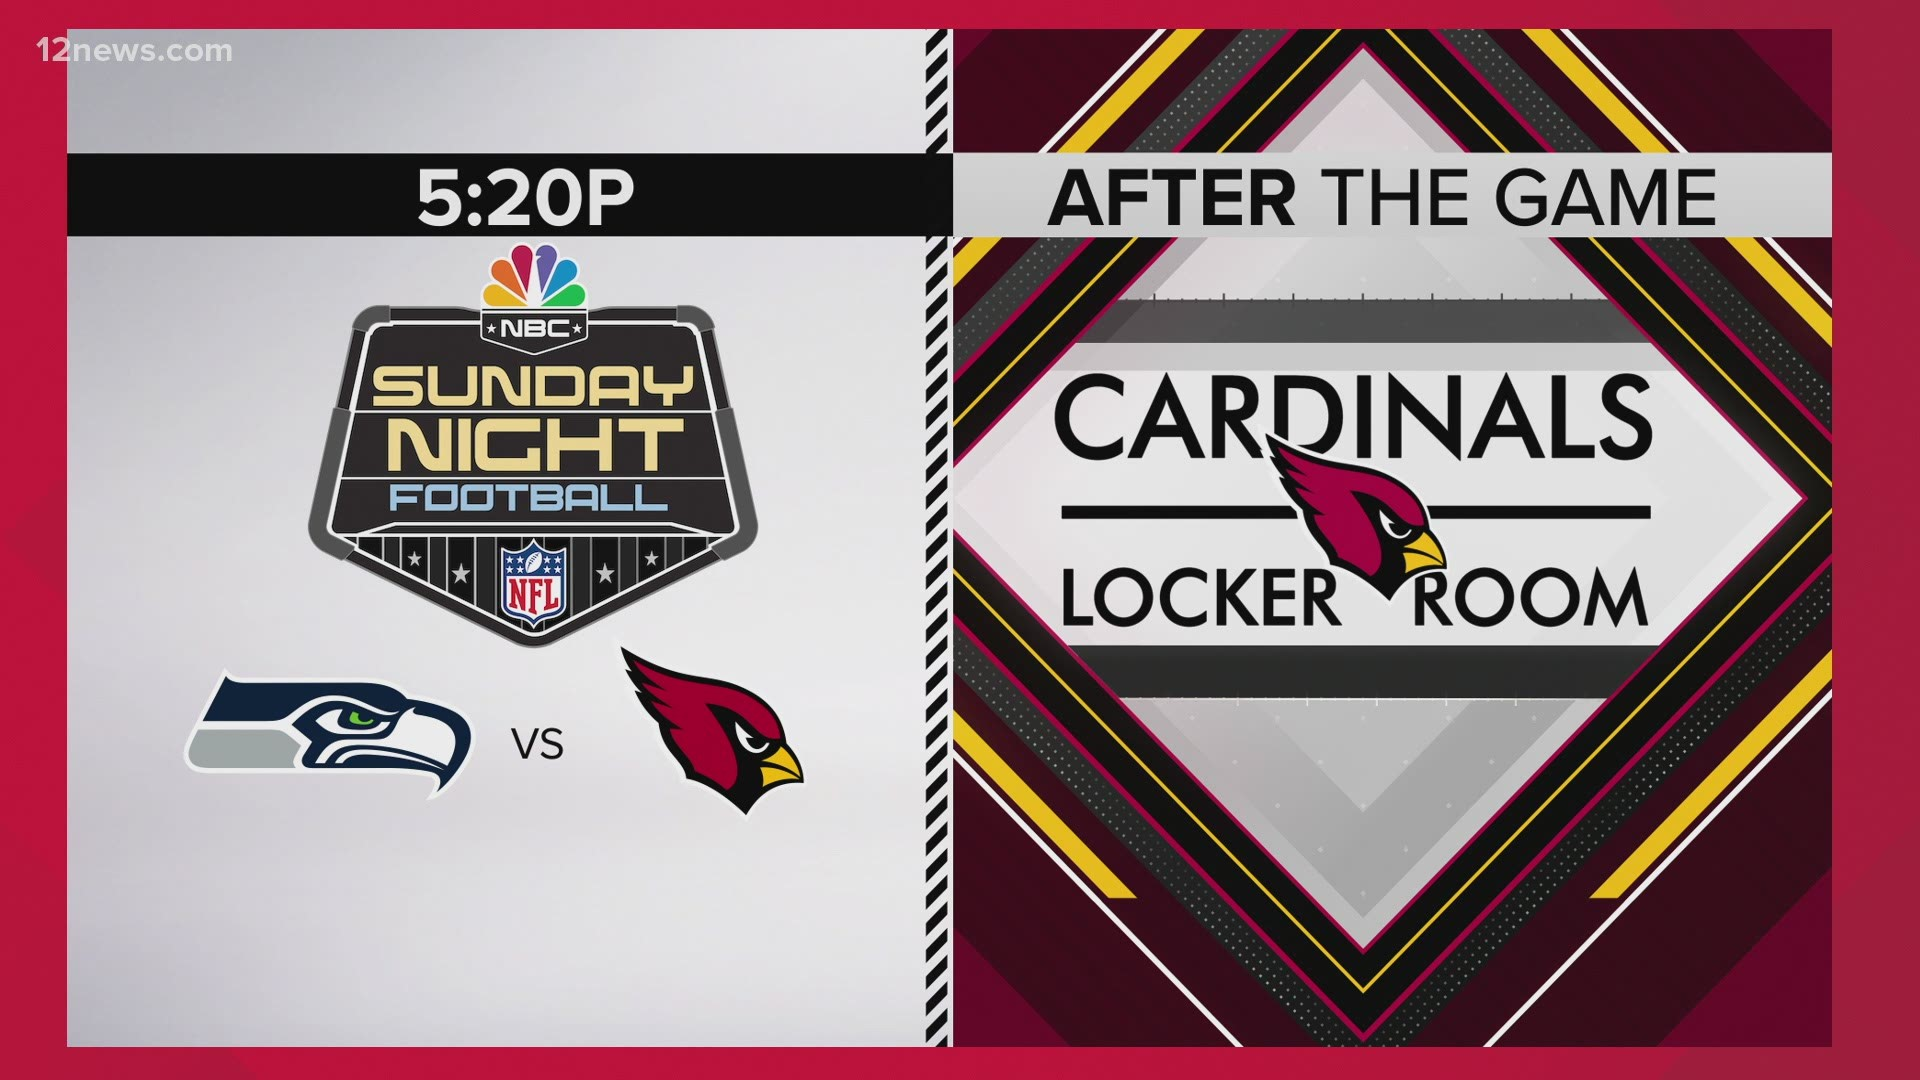 Cardinals Seahawks Game Moved To Sunday Night Football On Nbc 12 News 12news Com